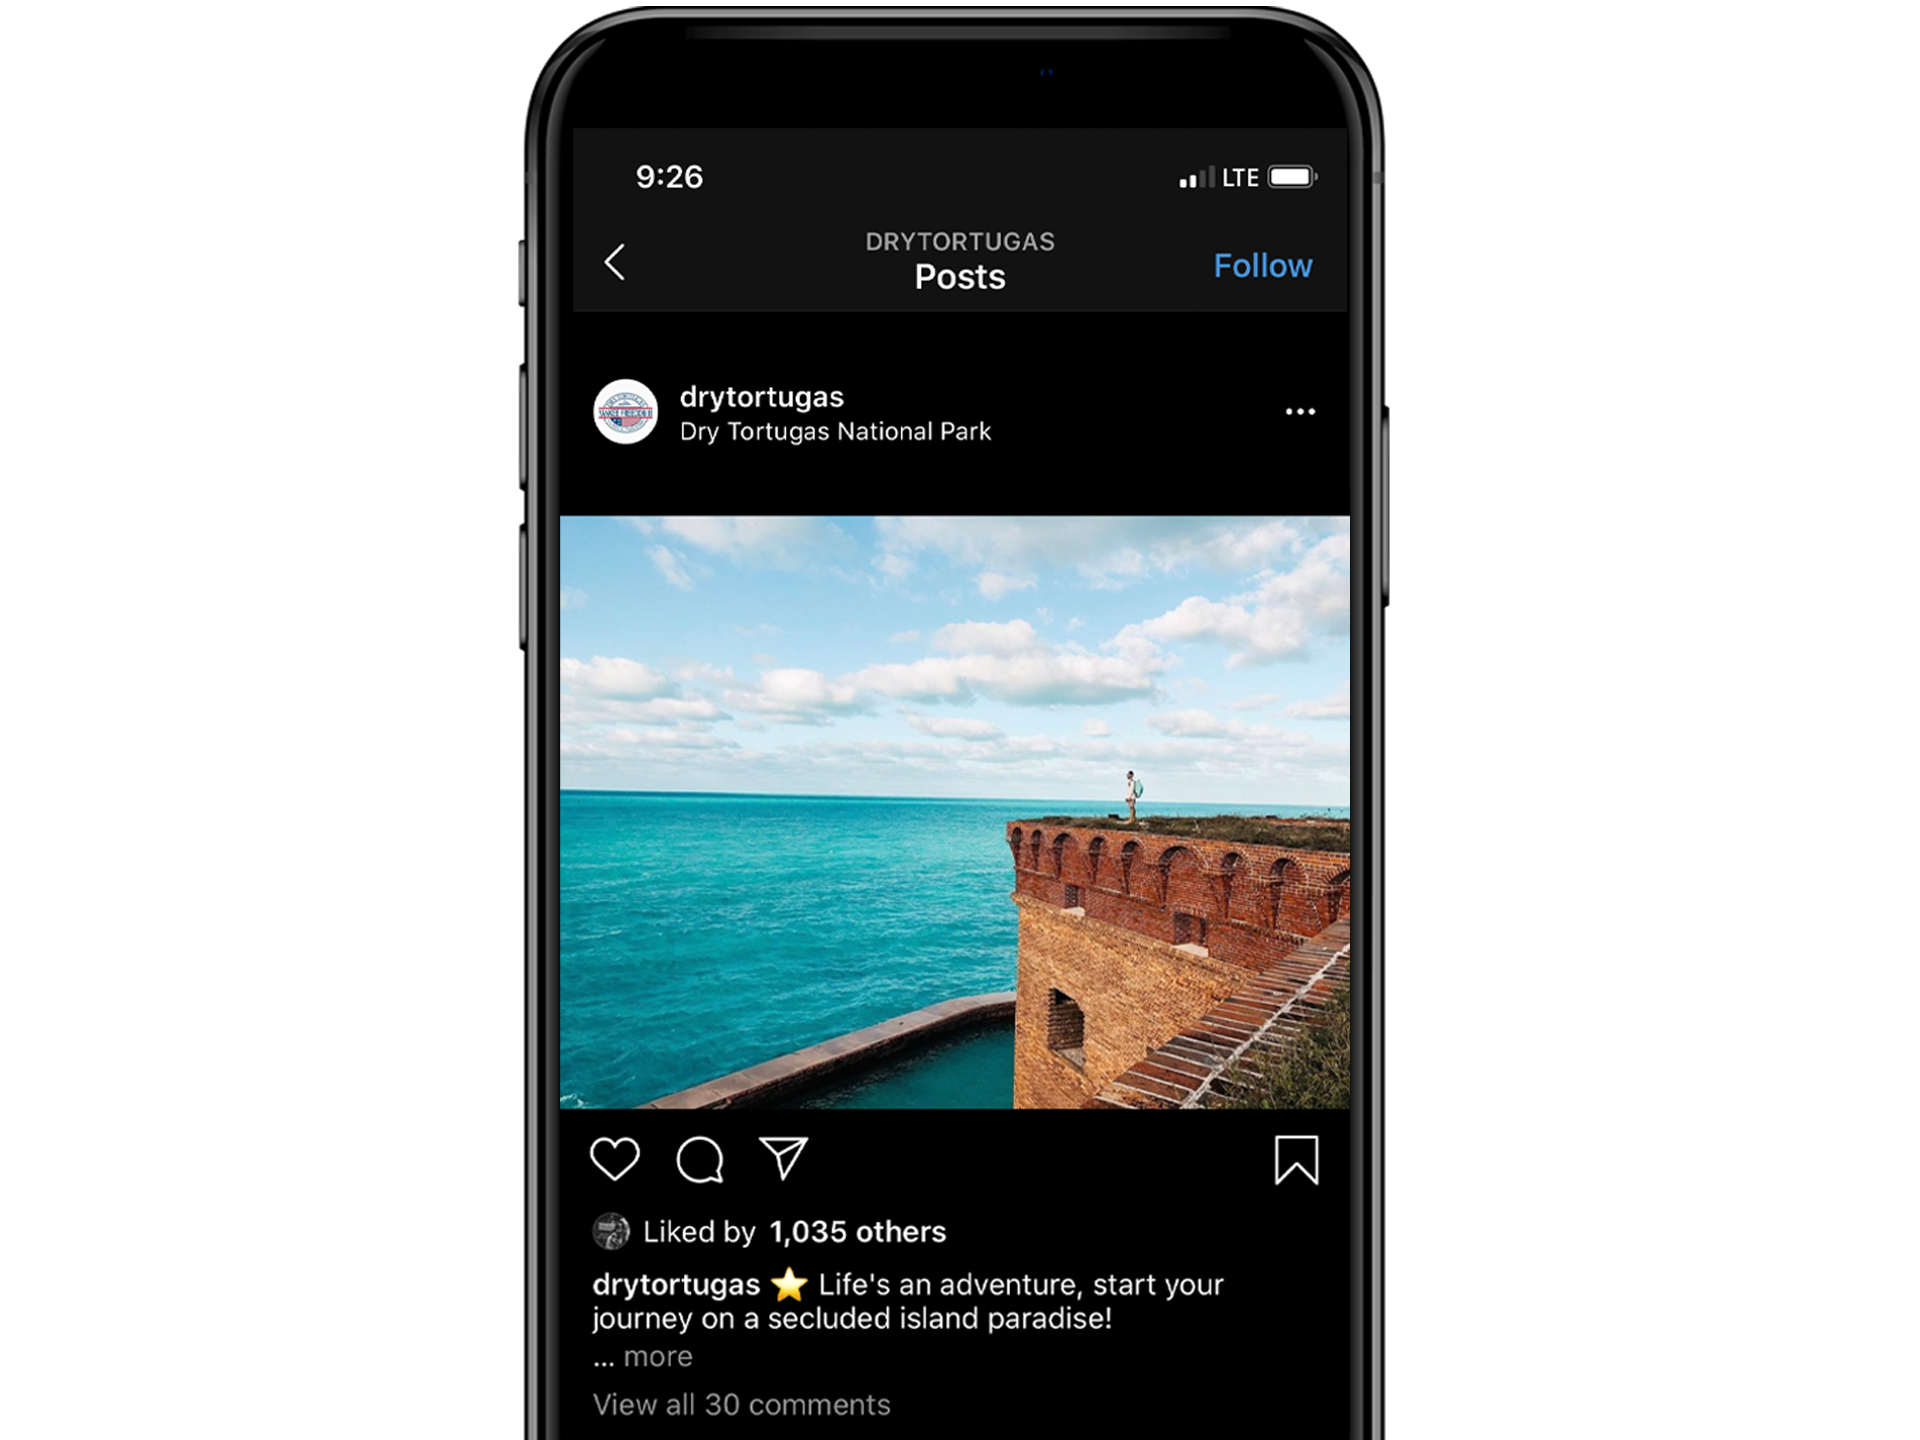 iPhone showing Dry Tortugas Instagram post